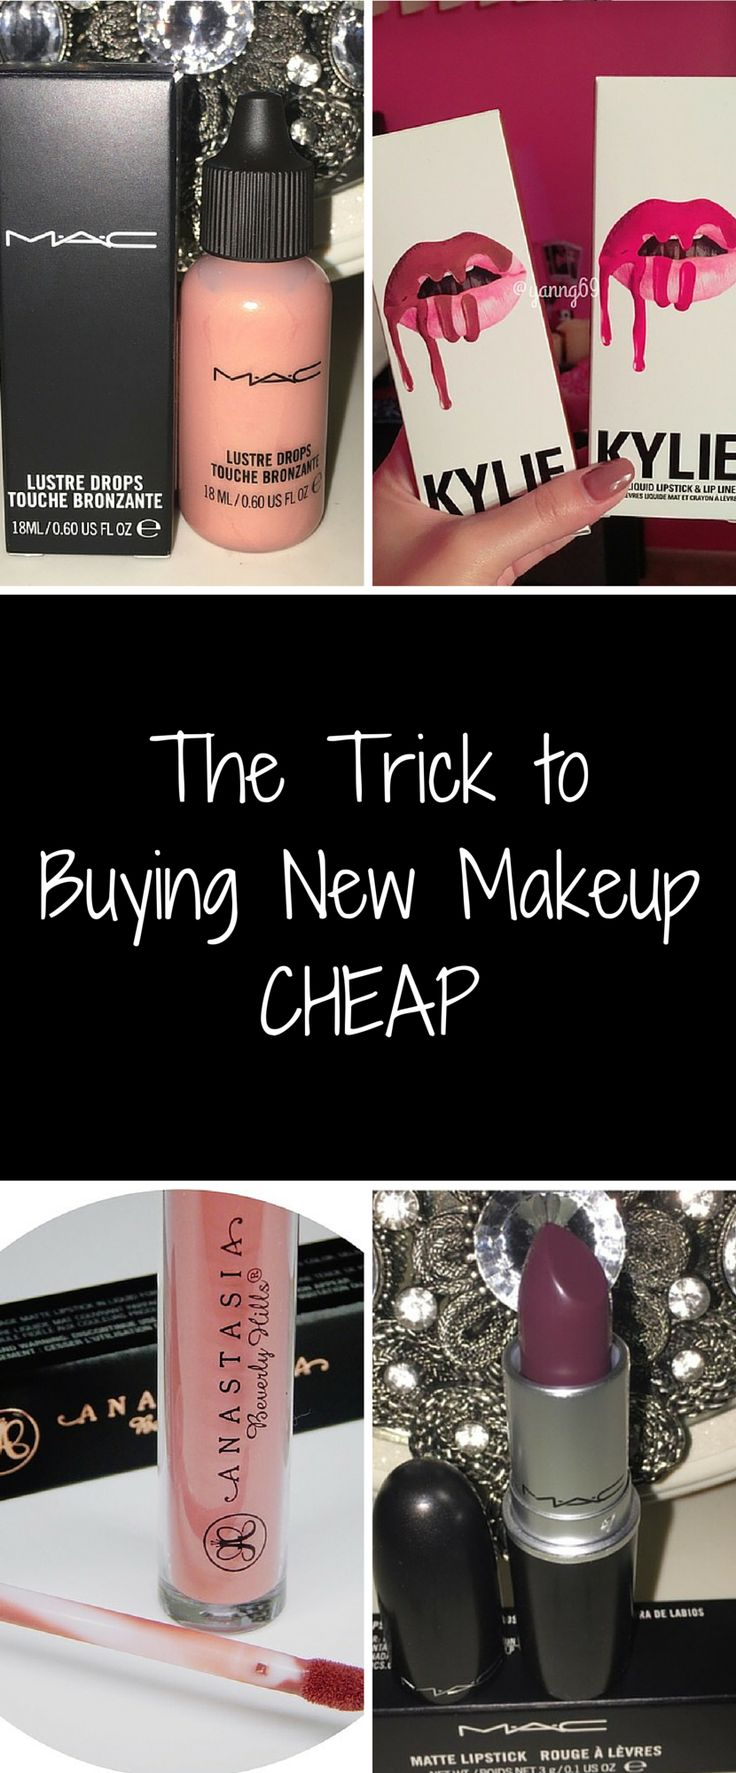 Shop all new cosmetics at up to 70% off retail prices. Click image to get the free Poshmark app now. Don't miss out on the sale!